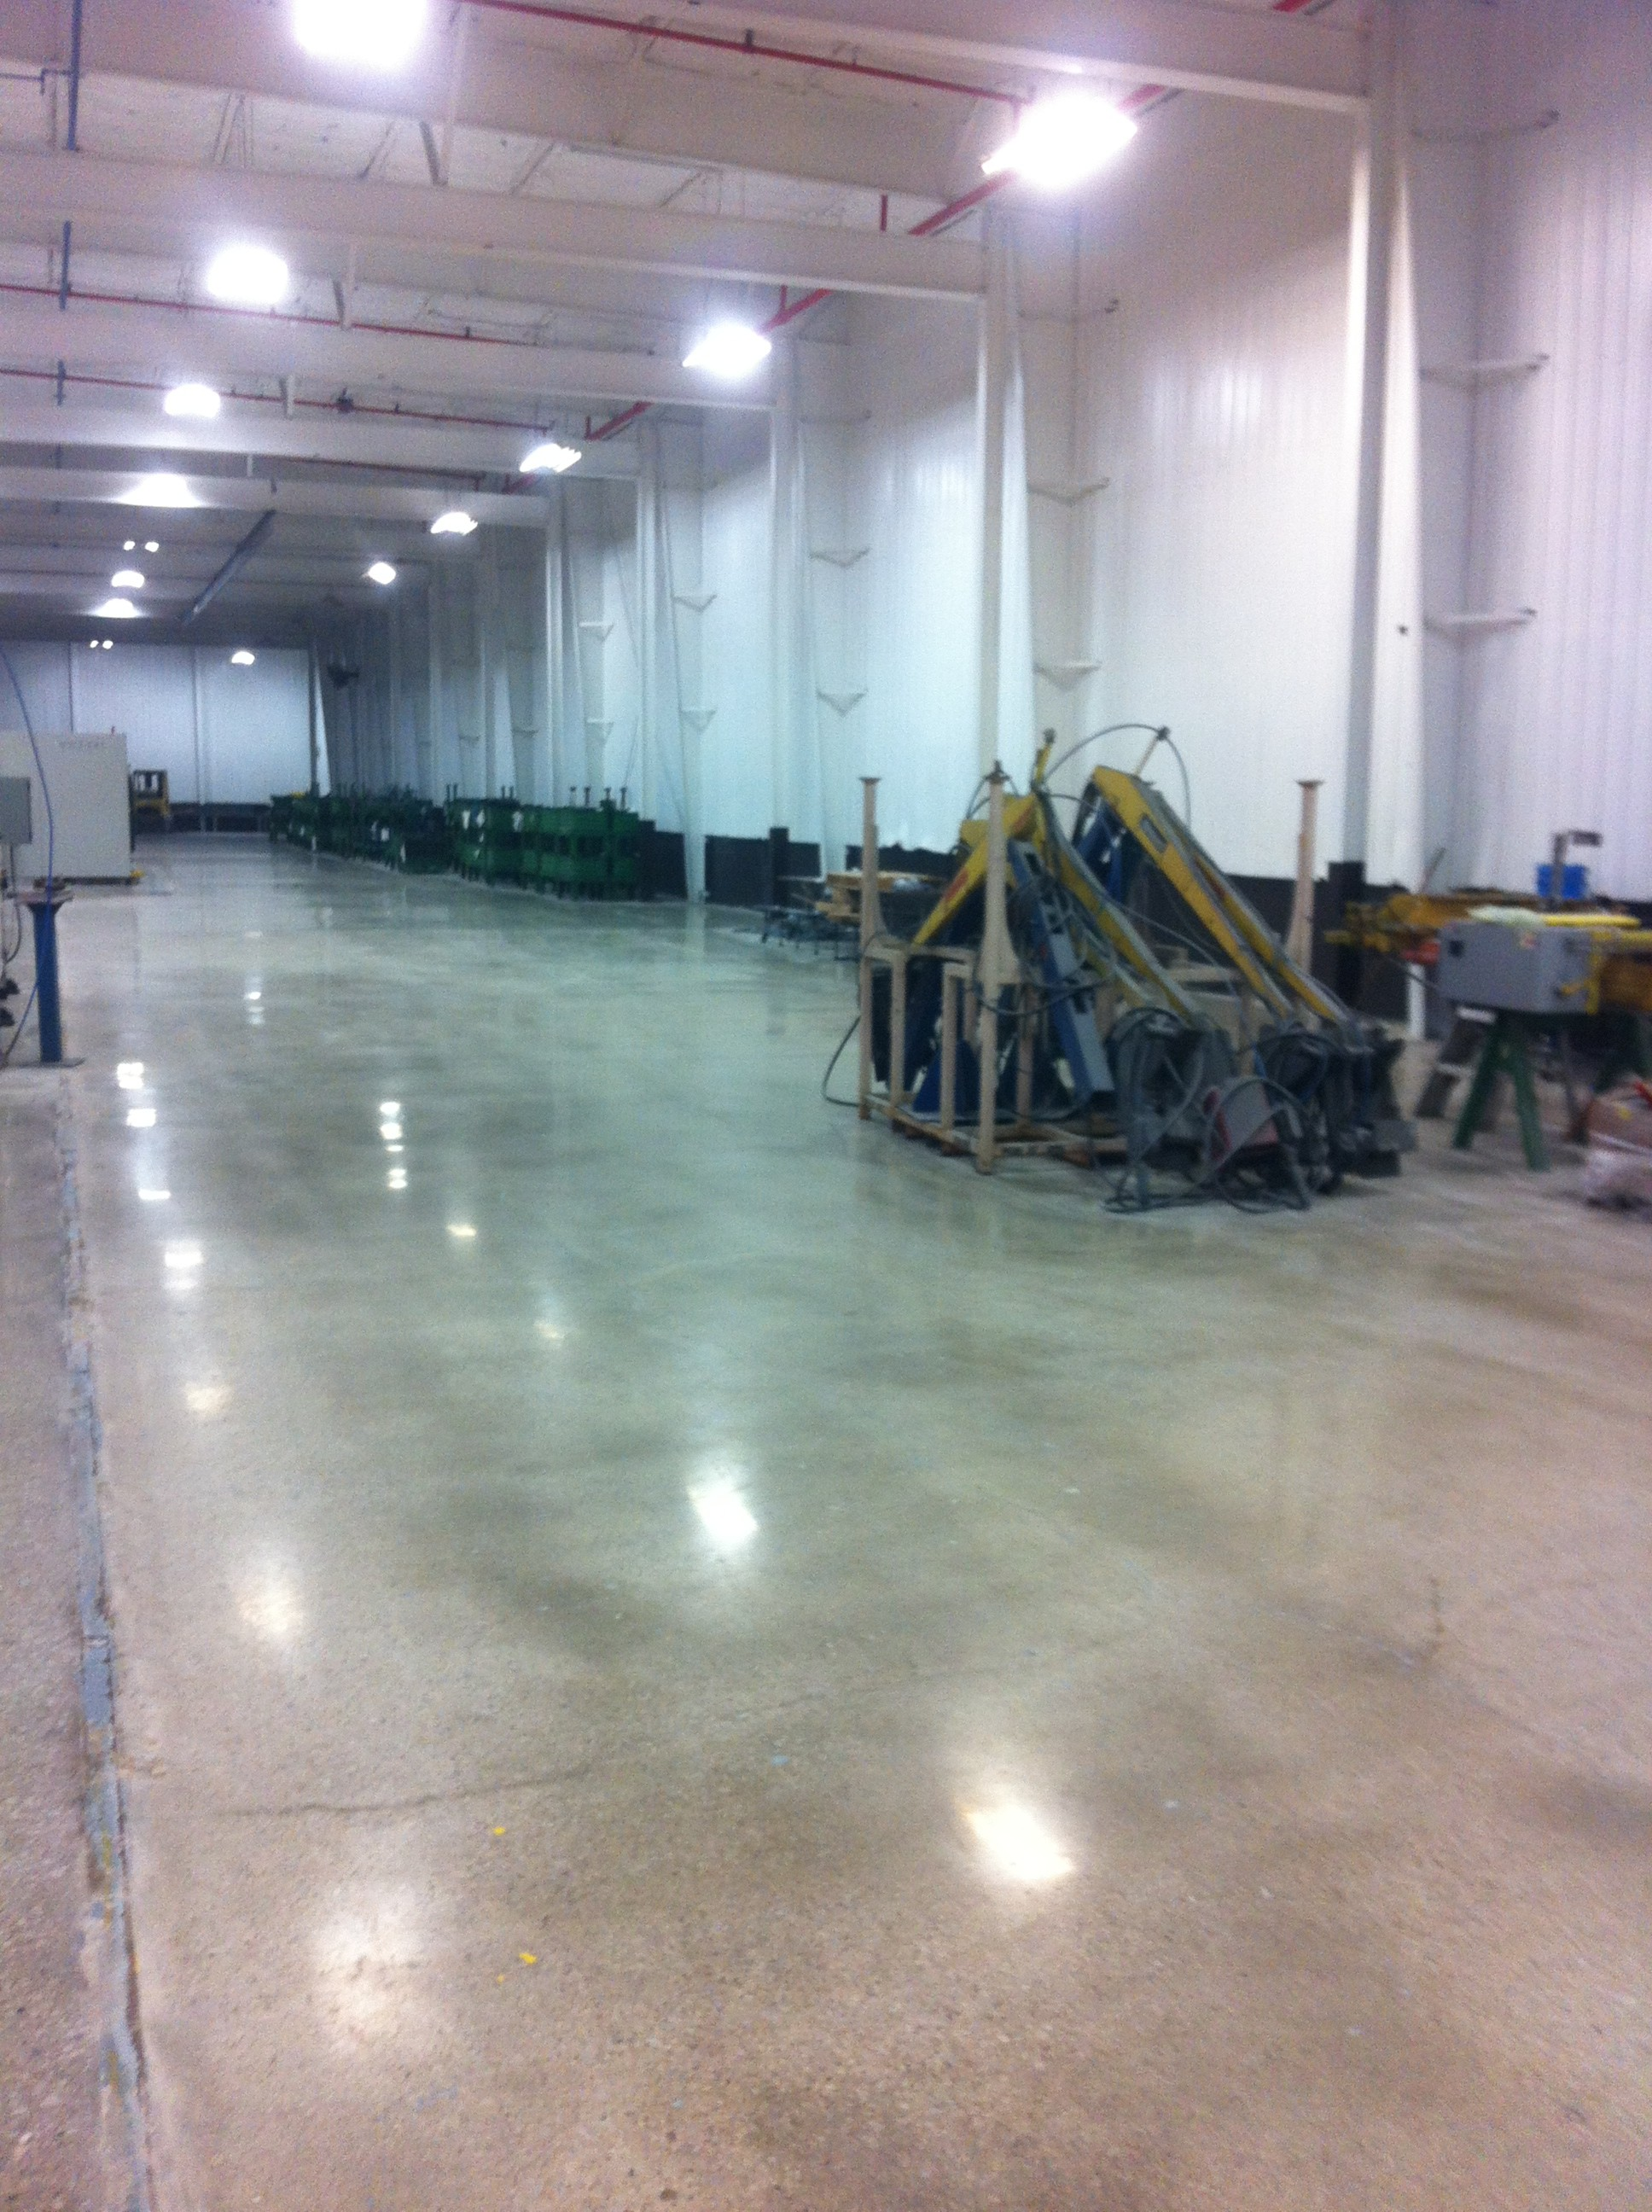 Low gloss floor sheen at a manufacturing facility in Ottumwa, IA